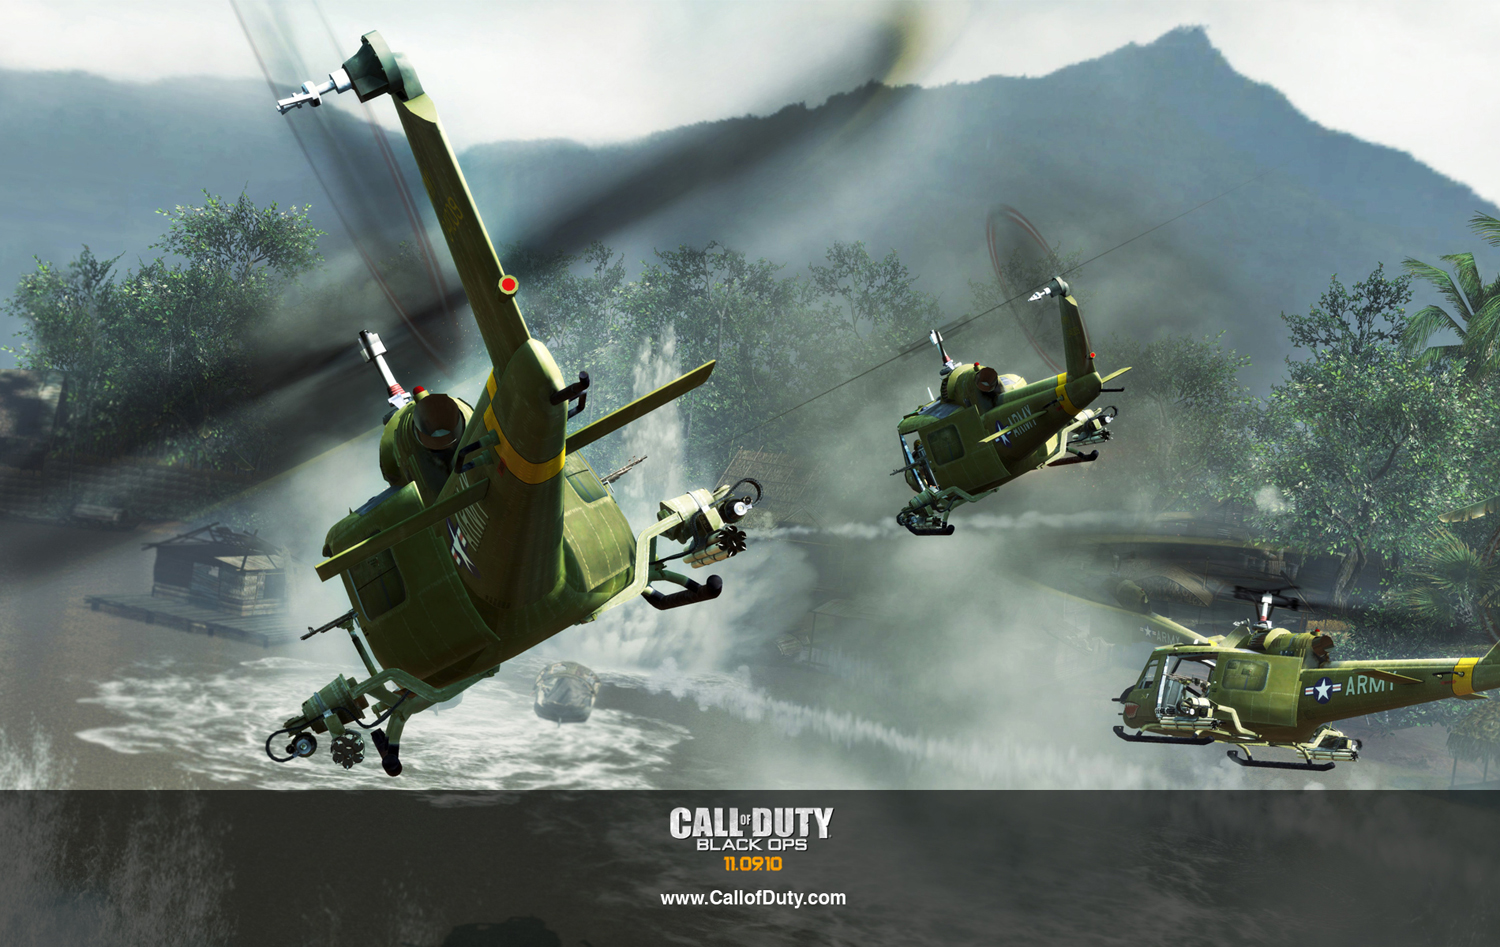 CODBlackOps_Wallpaper_4_1900x1200